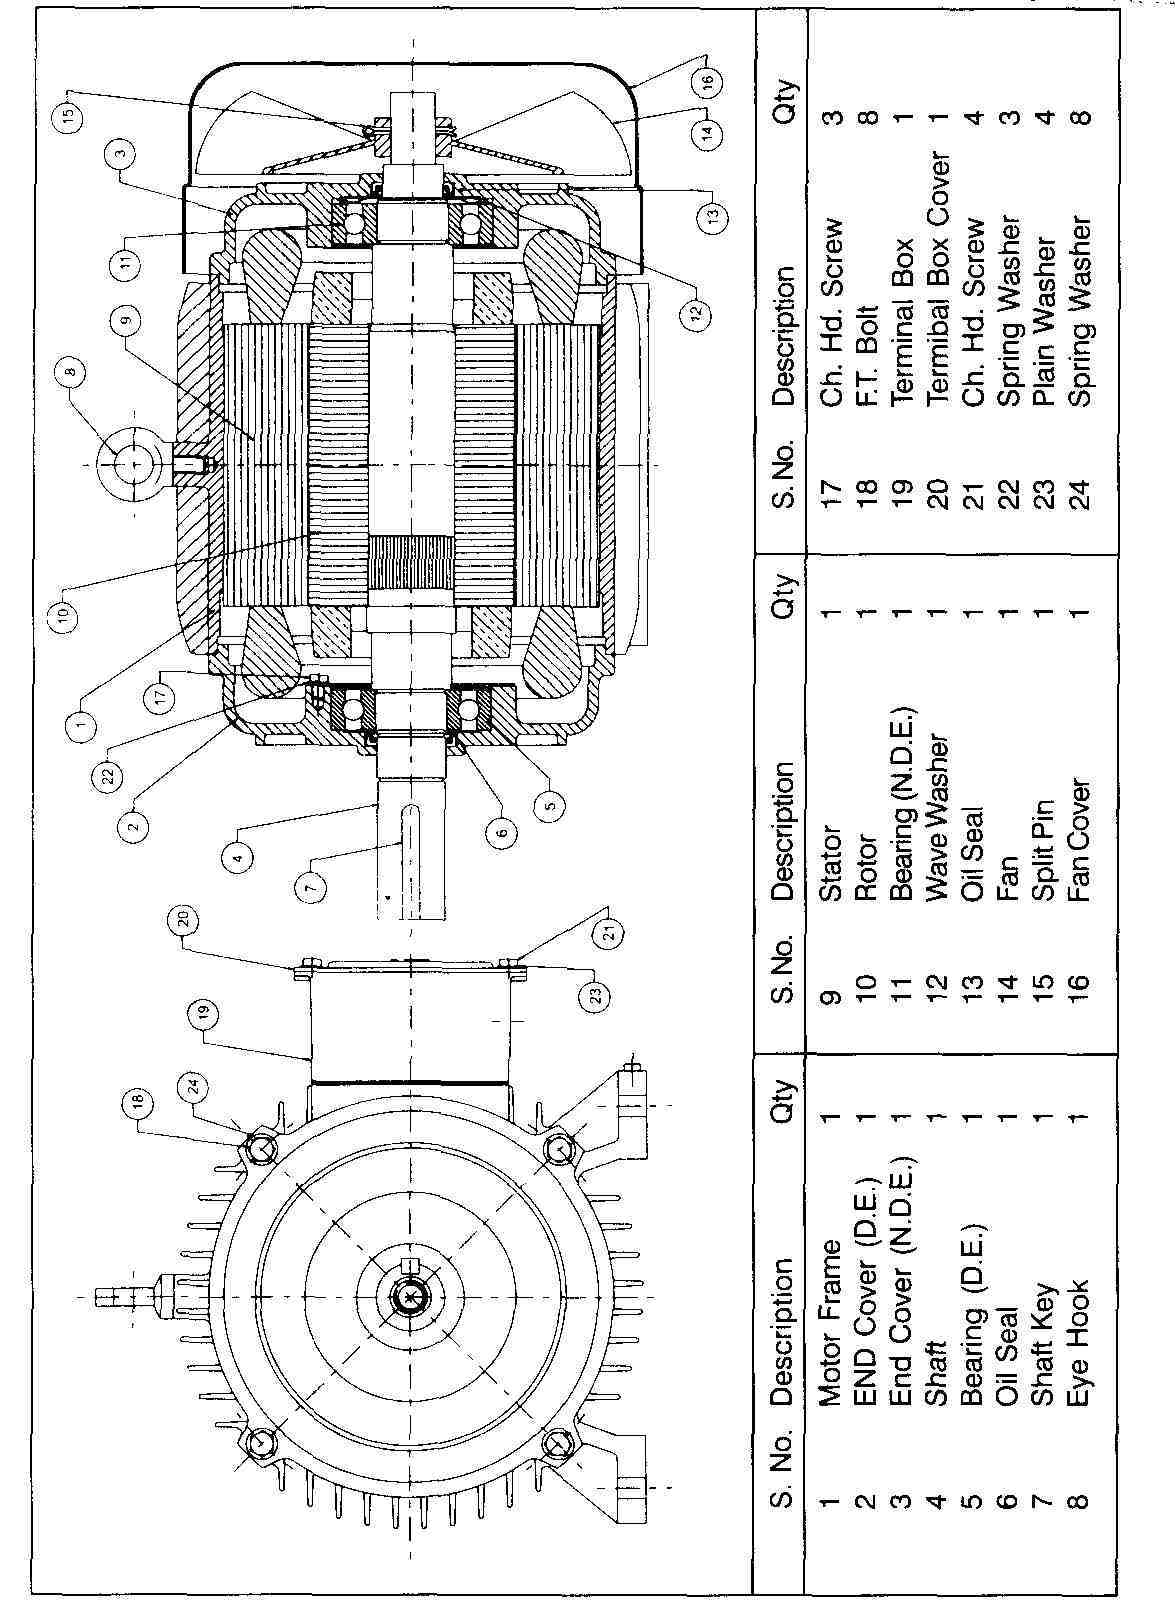 hight resolution of general assembly drawing and spares list motor manufacturing companies in india induction motor three phase motor squirrel cage induction motor